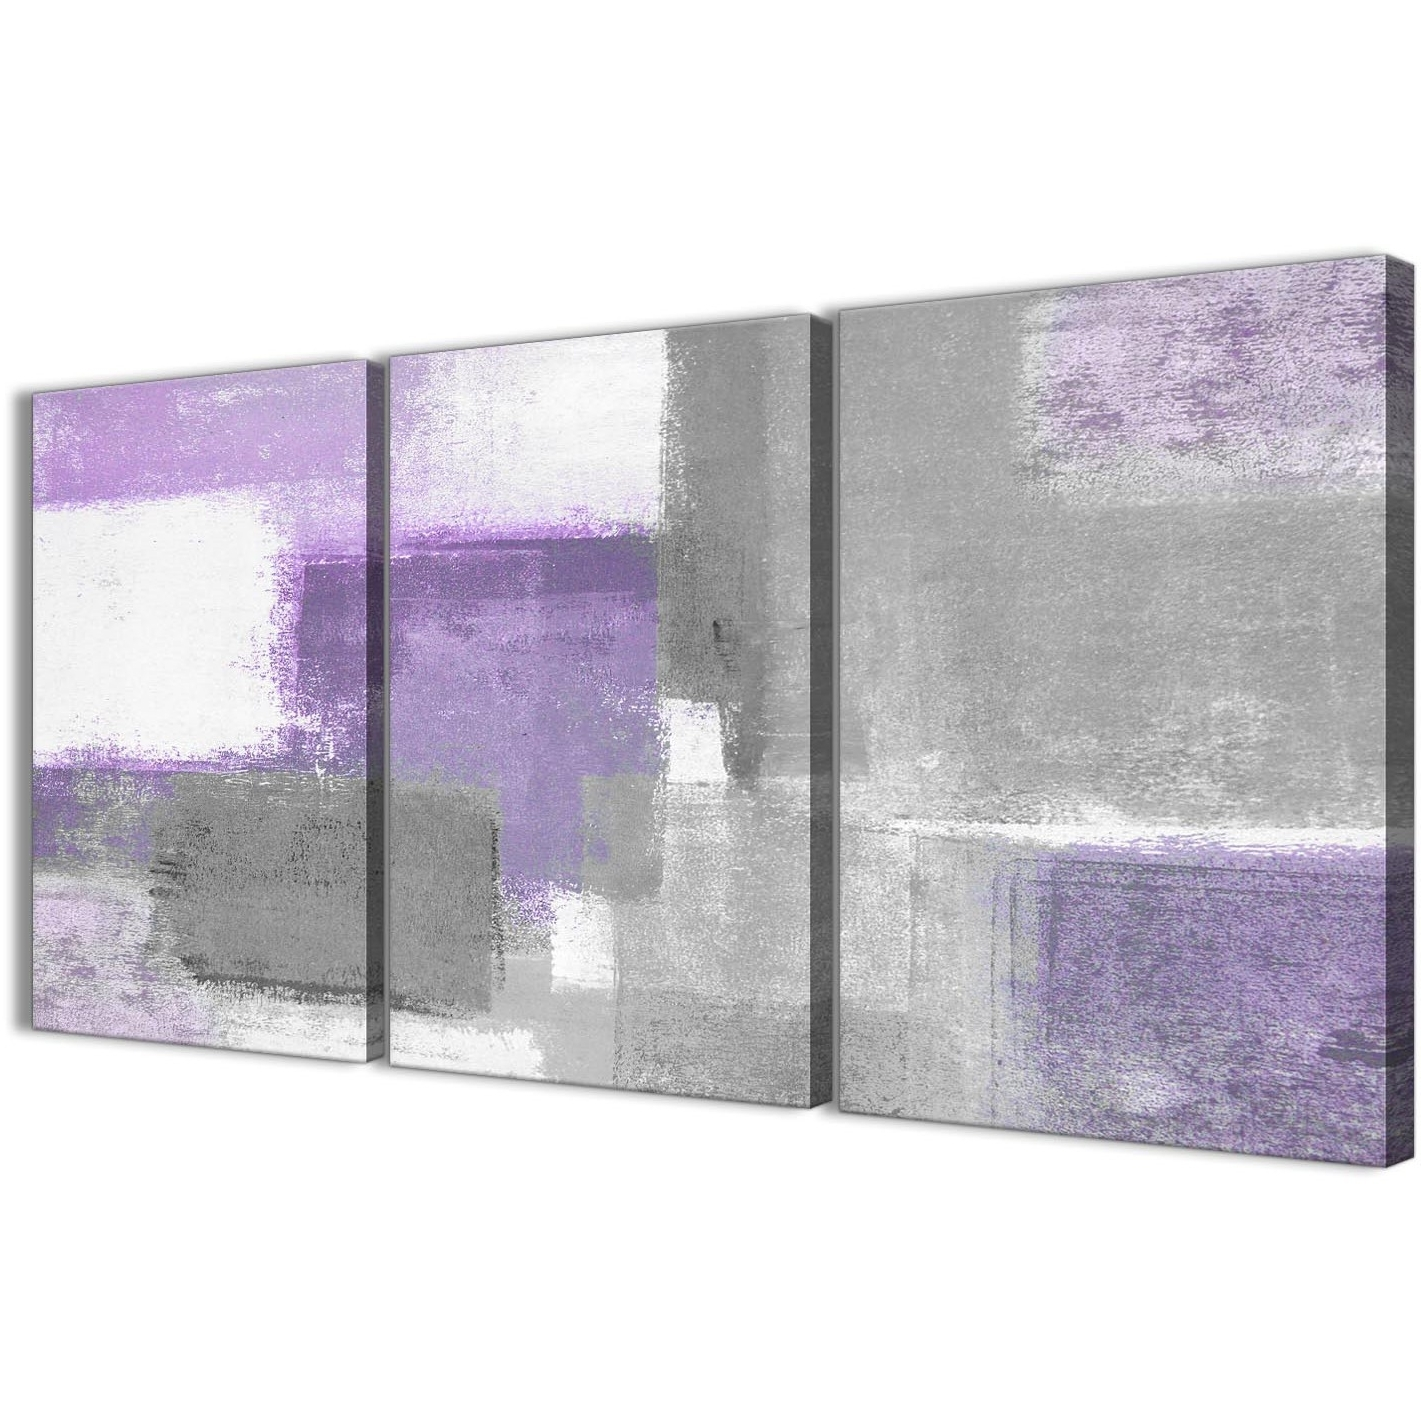 Most Recent 3 Piece Purple Grey Painting Kitchen Canvas Pictures Decor Within Purple Wall Art (View 11 of 15)